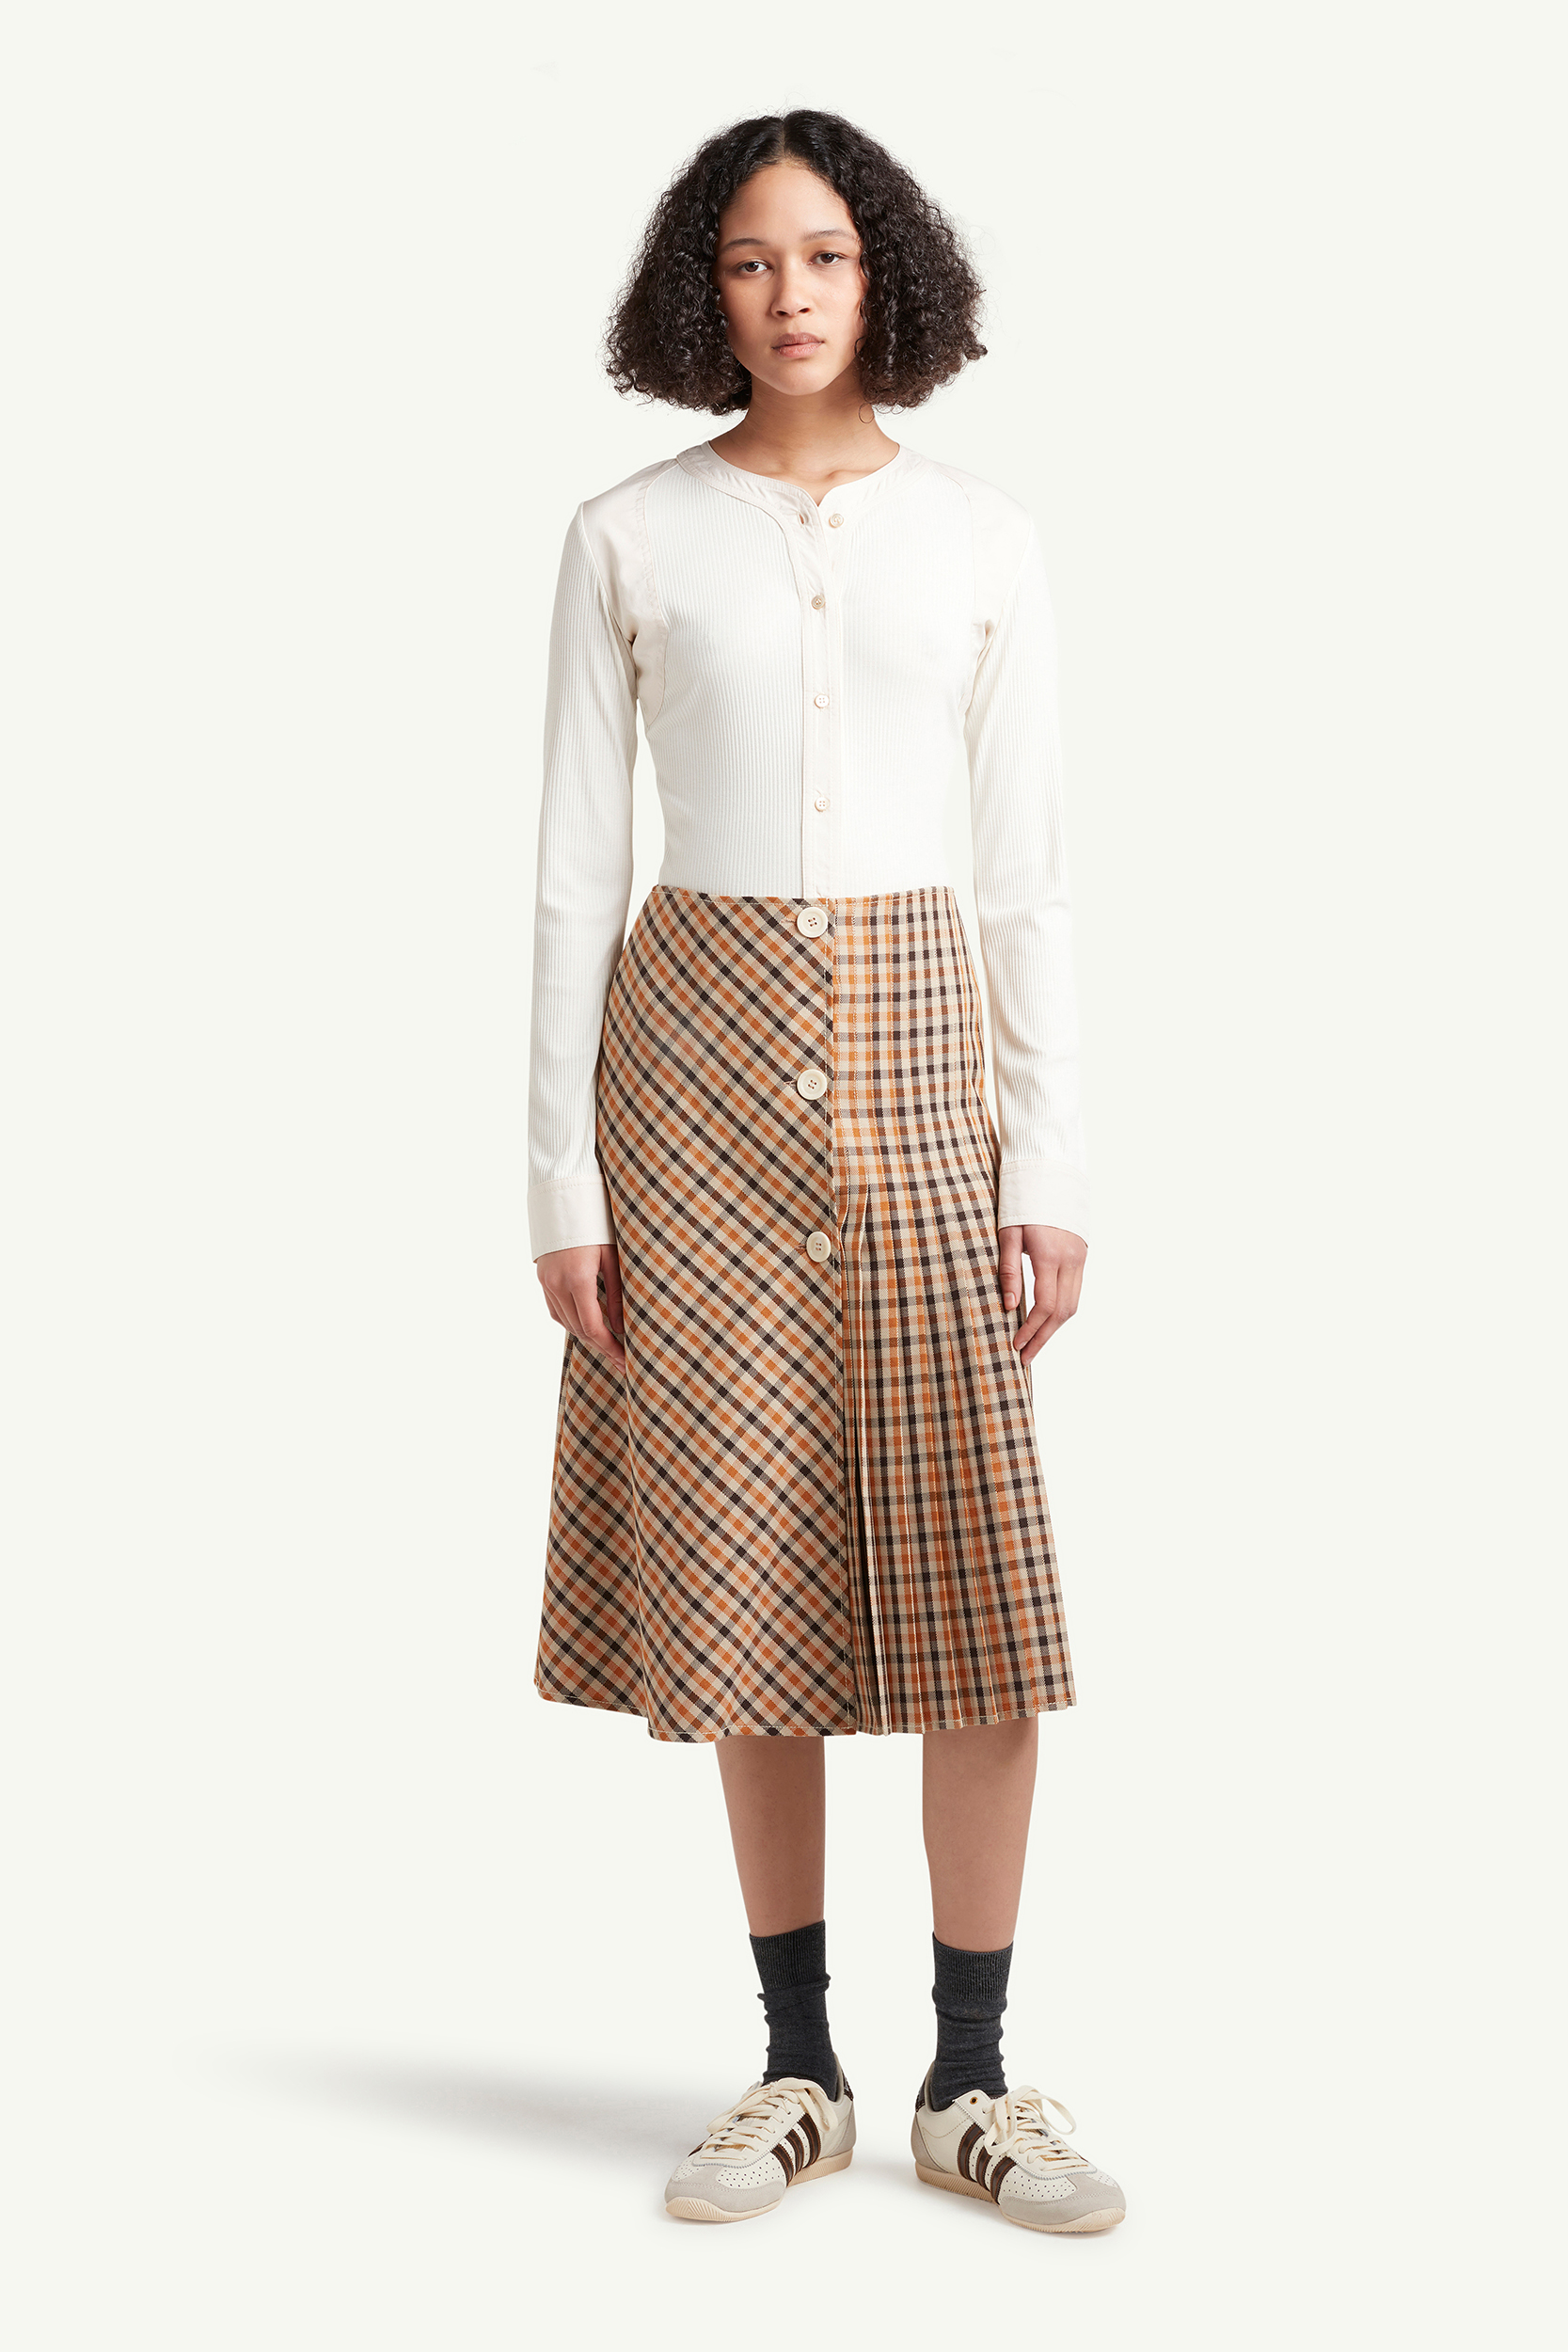 Womenswear Model wearing light brown checkered skirt with white top